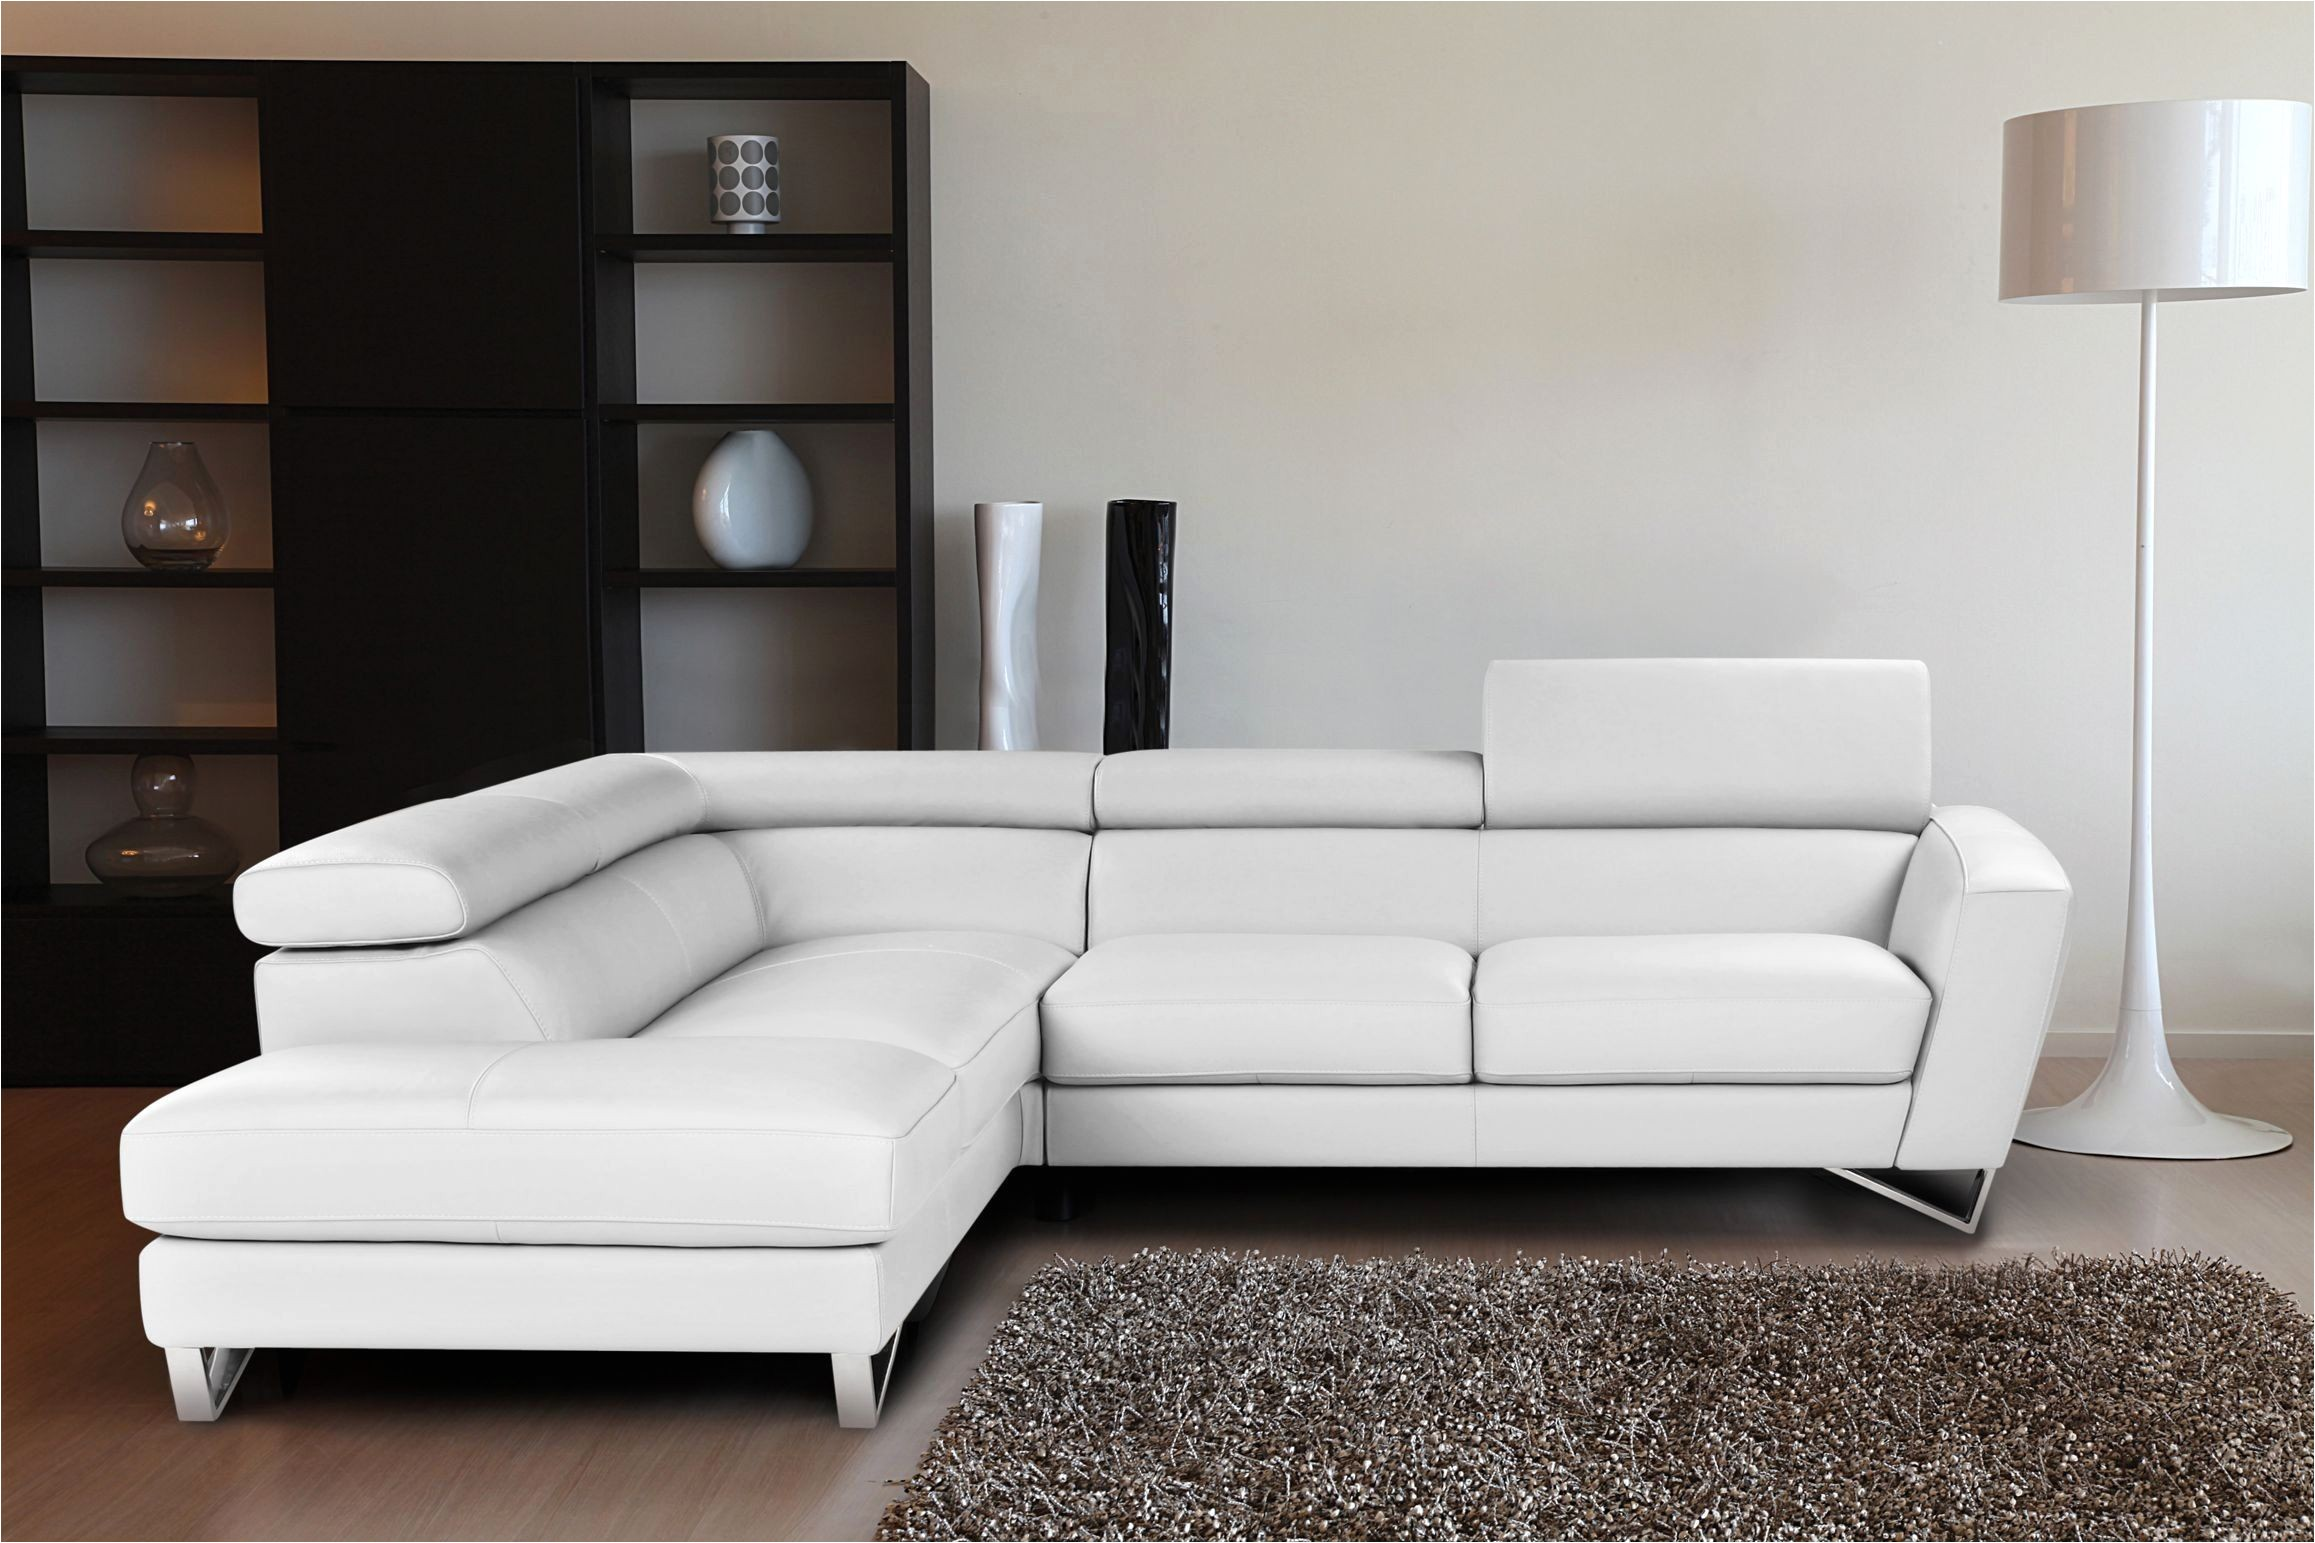 inspirational contemporary italian sofas image contemporary italian sofas elegant brown italian leather sectional sofa contemporary black